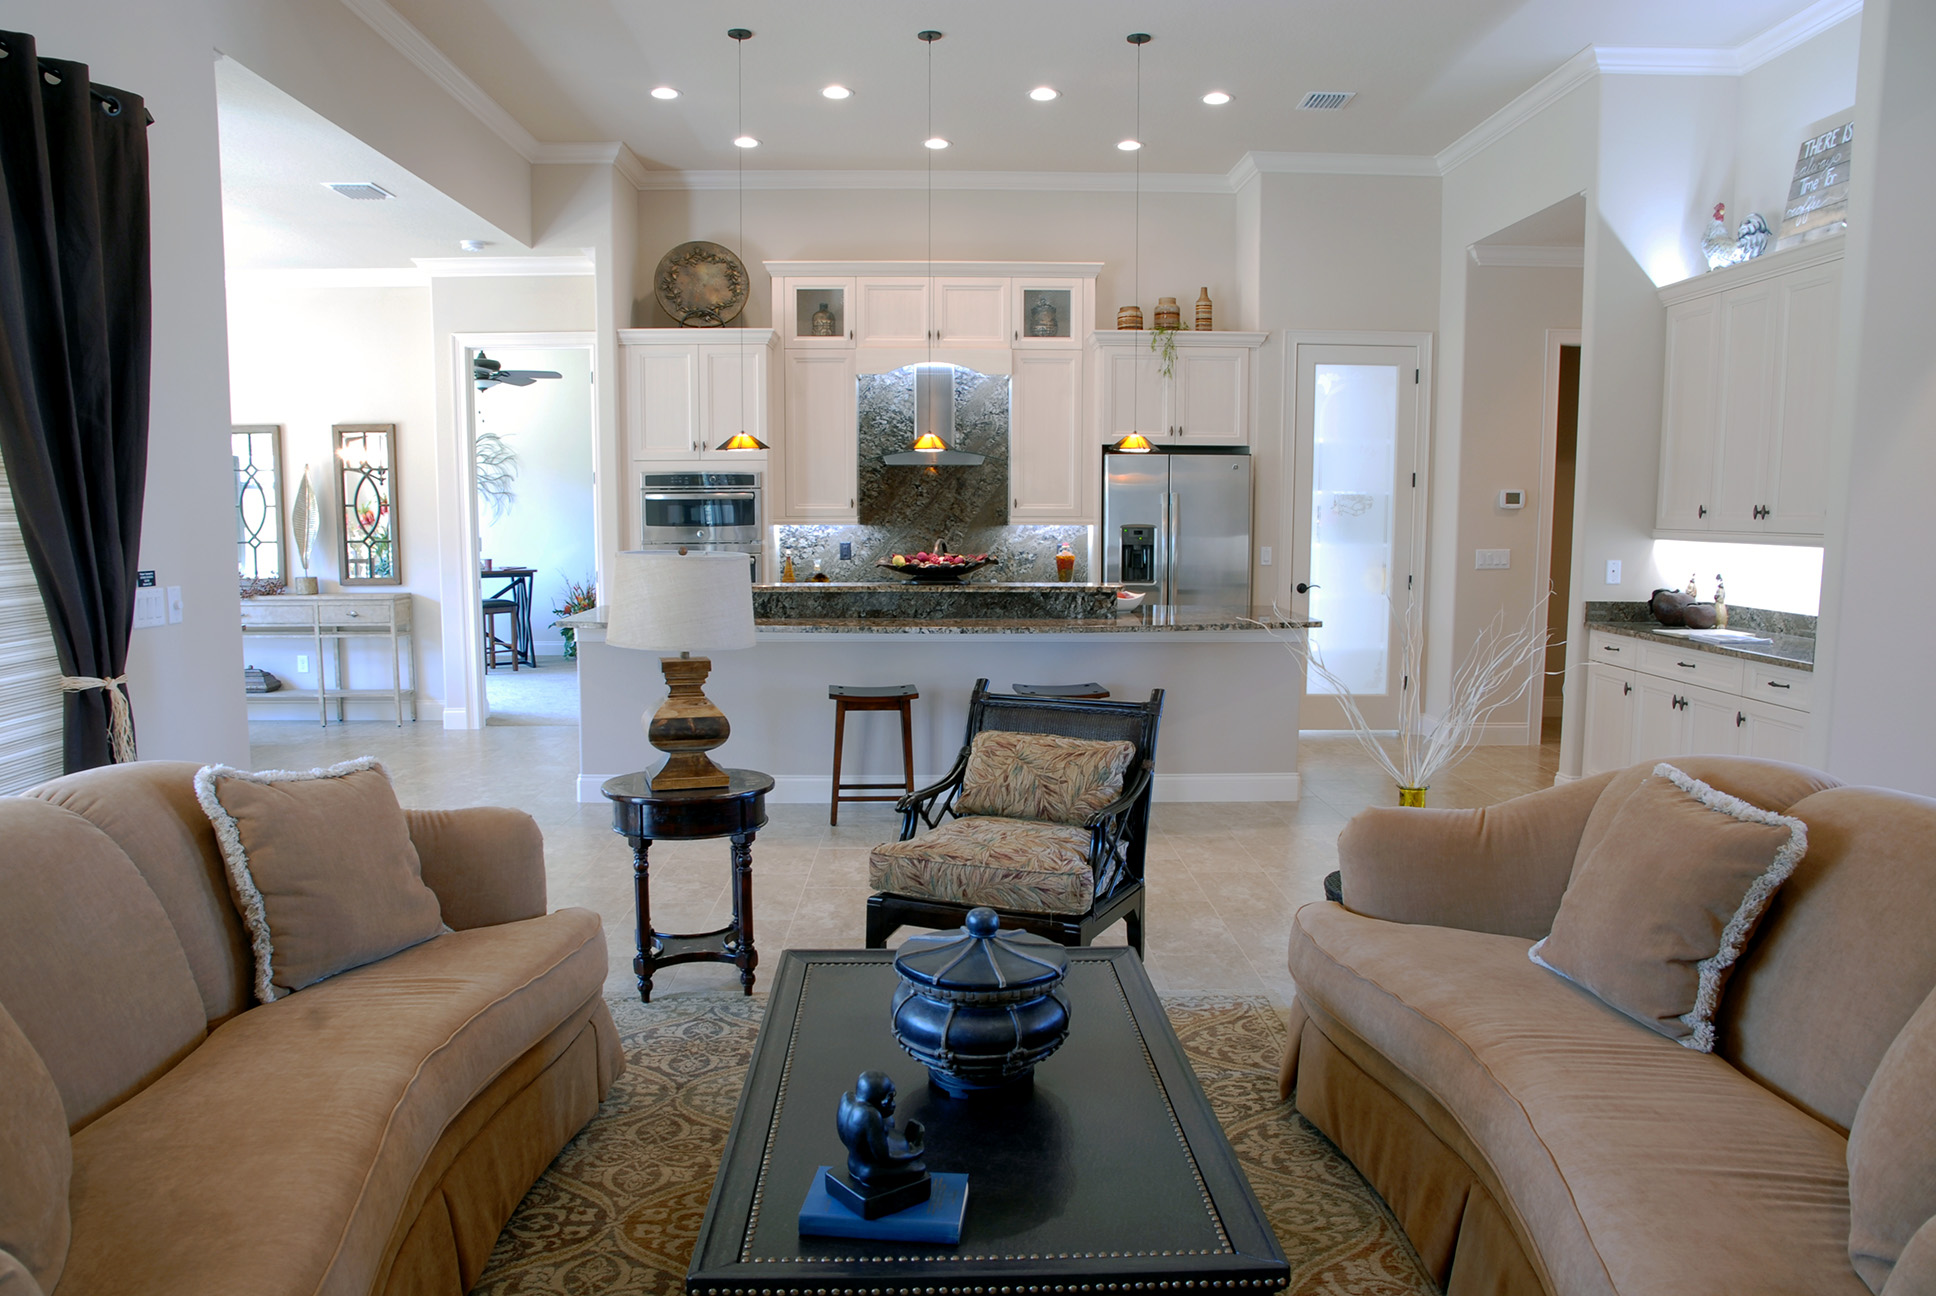 Open kitchen and living area with matching brown couches